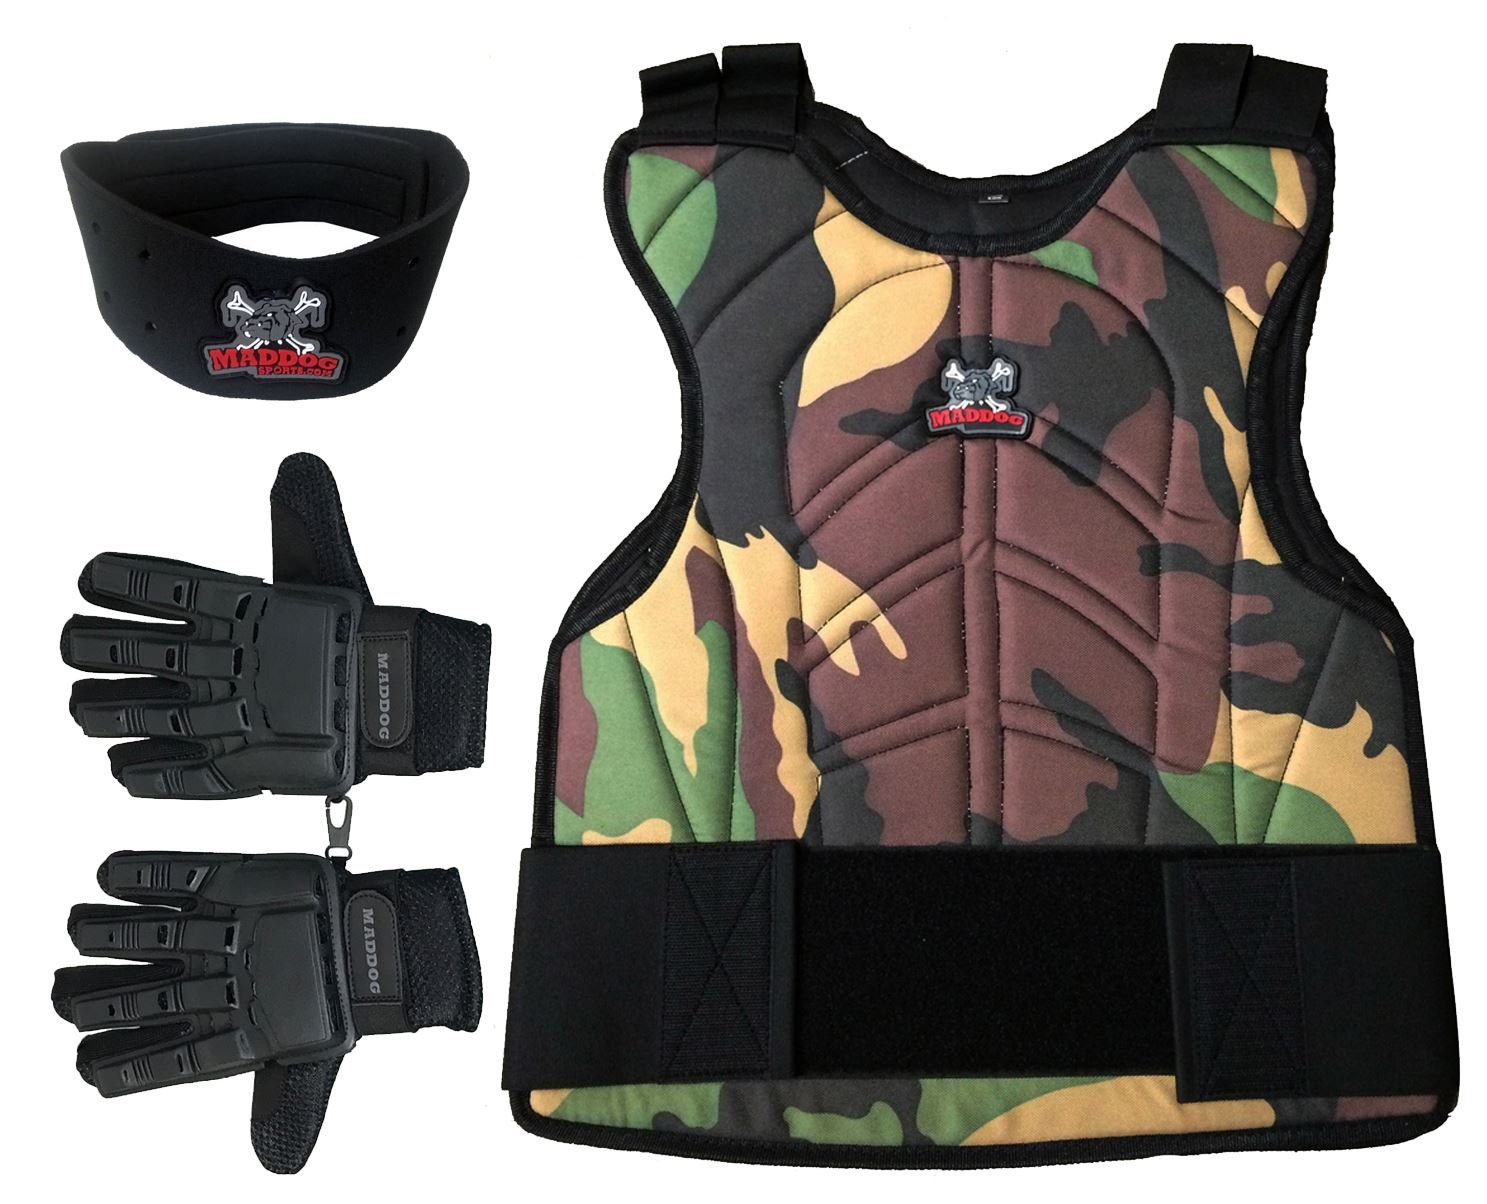 Maddog Sports Padded Chest Protector, Full Finger Tactical Glove, Neck Protector Combo Package - Camo - Small/Medium by MAddog